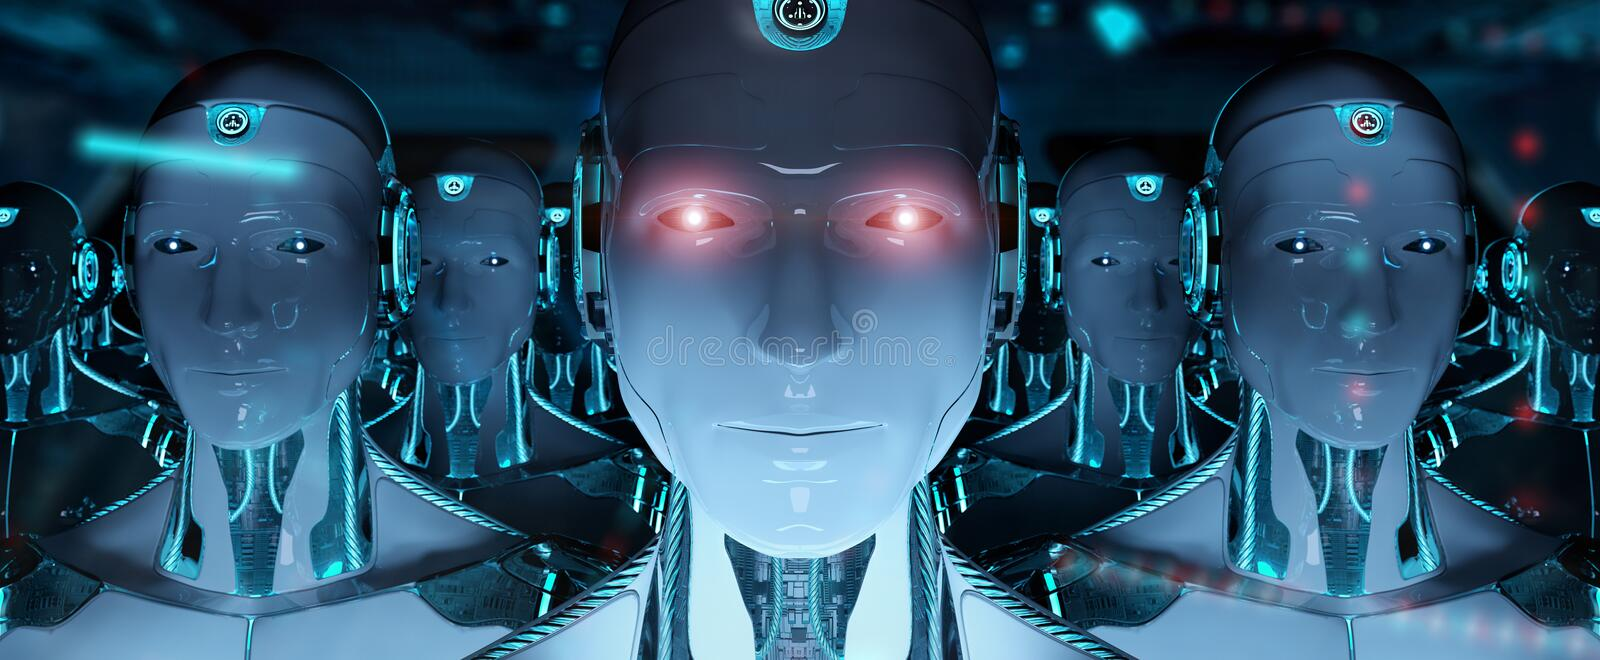 Group of male robots following leader cyborg army 3d rendering royalty free illustration